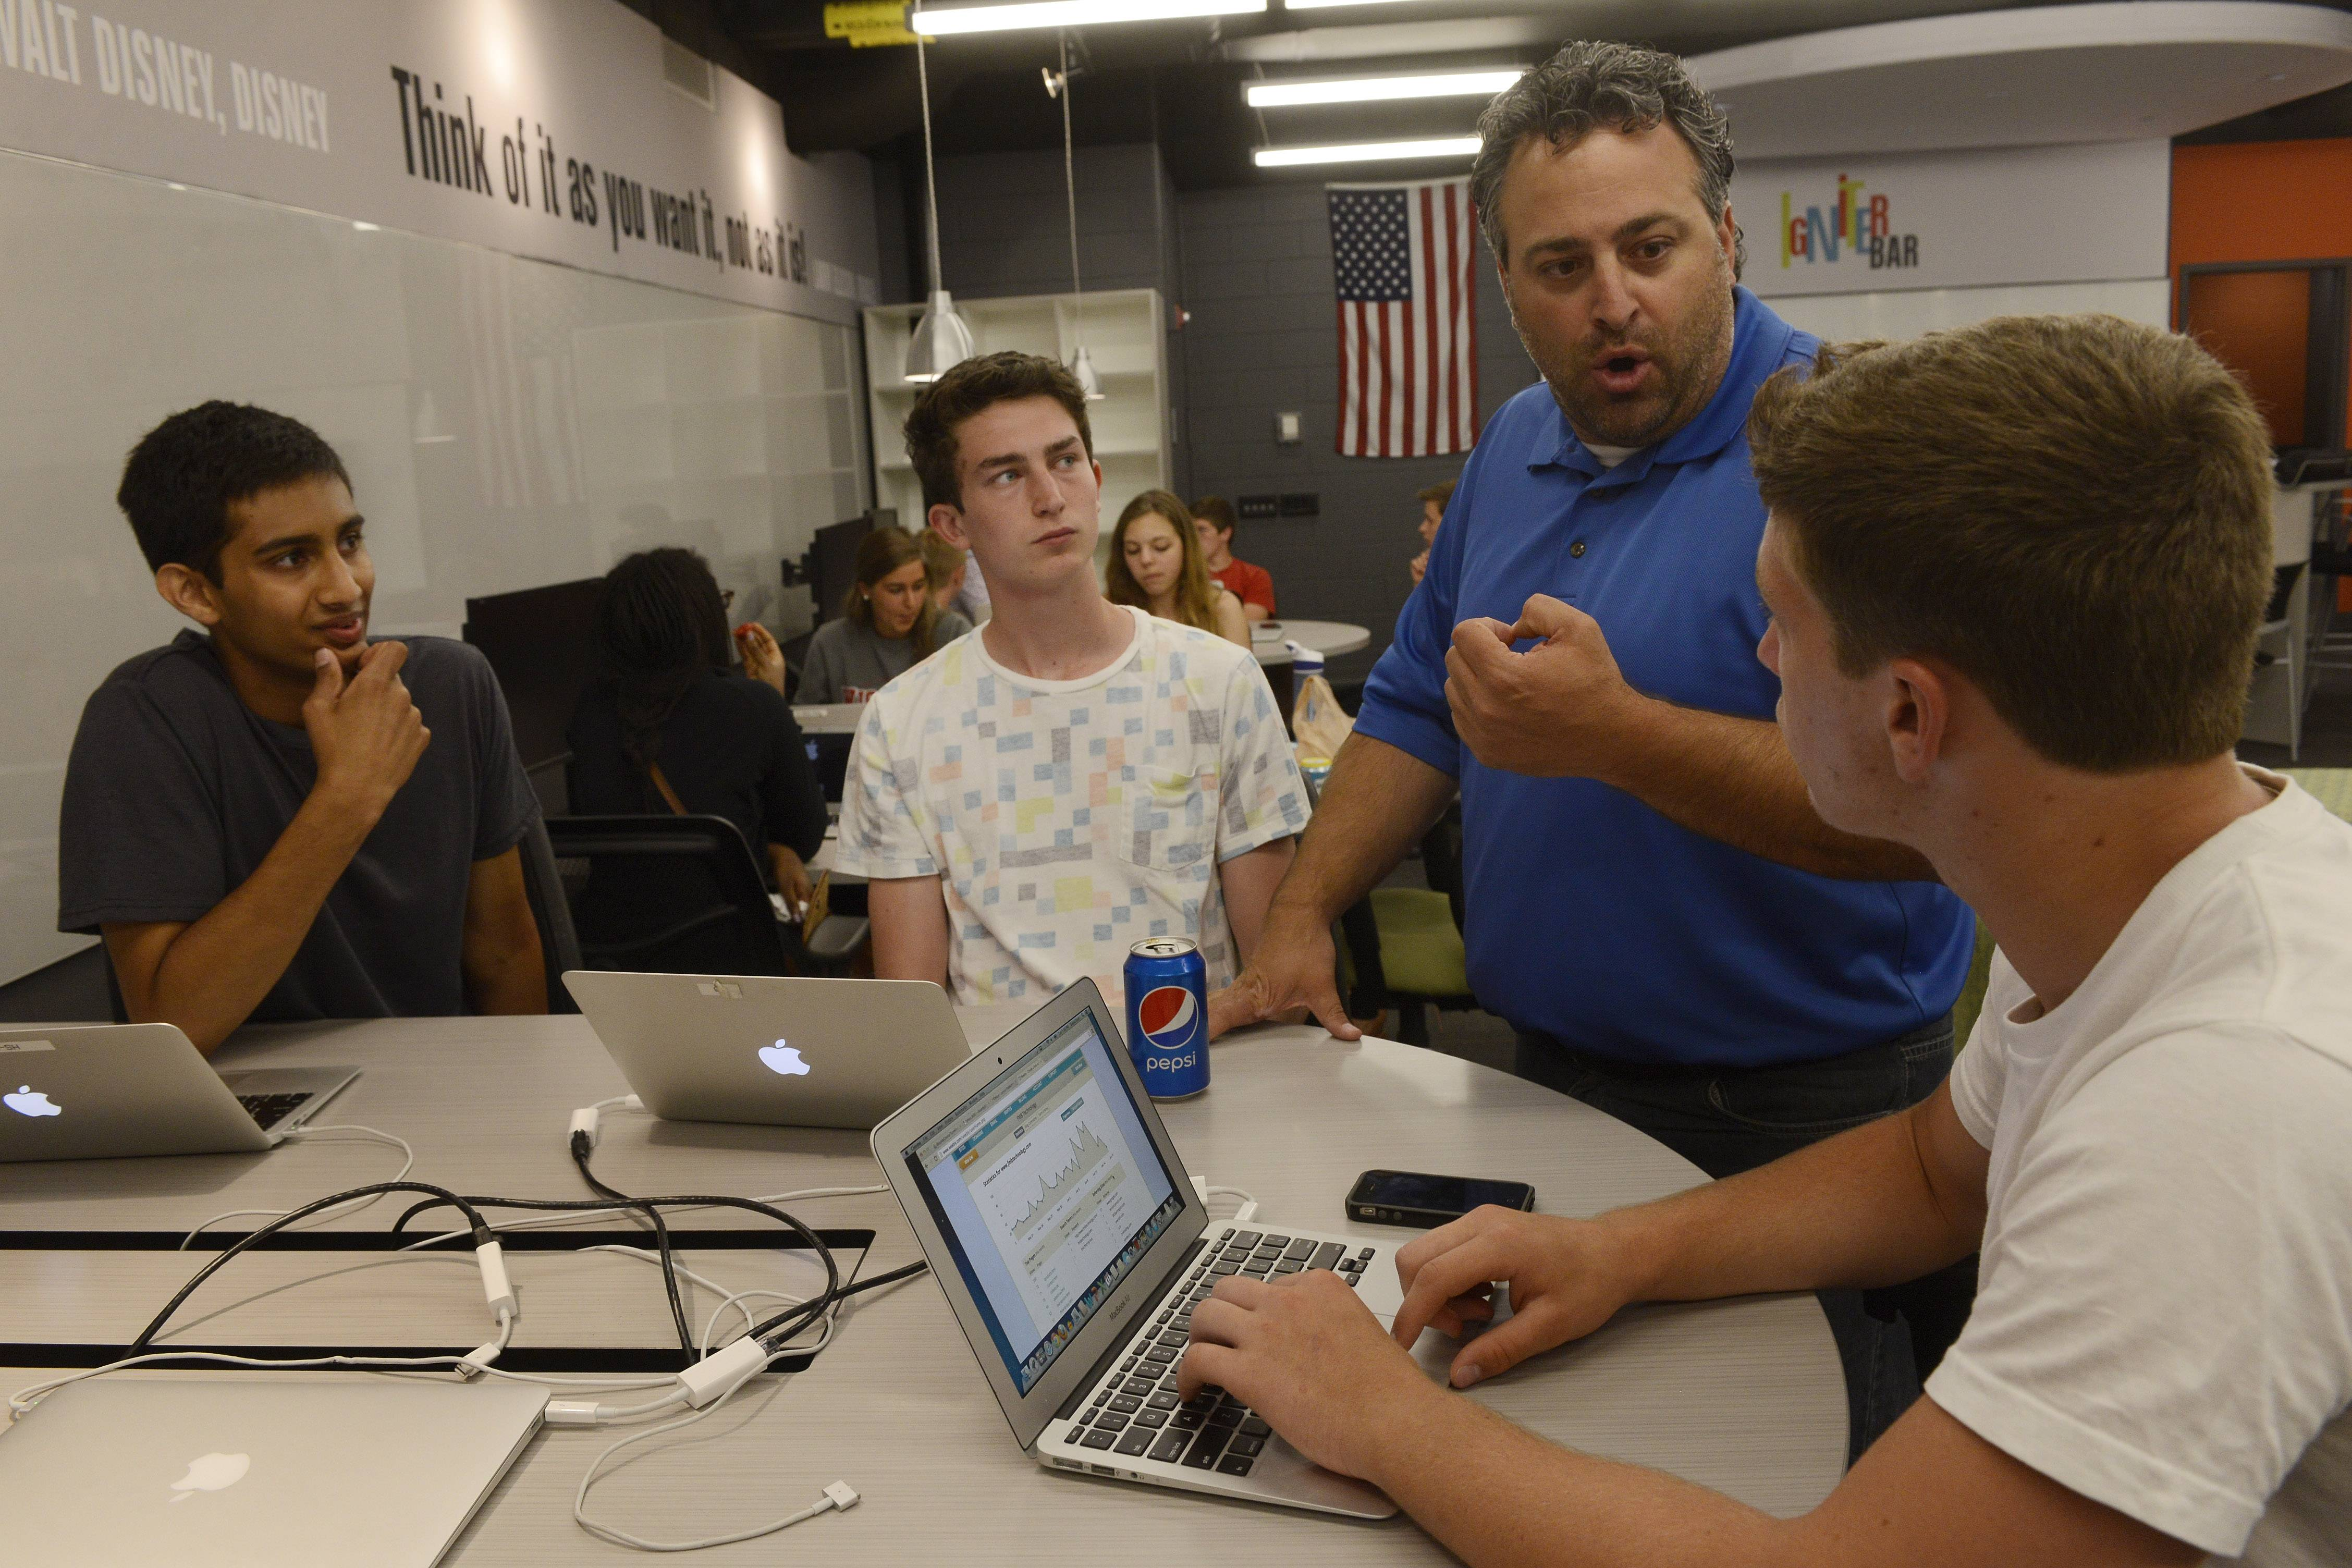 From left, Sanjit Narendra, Jack Lenihan and Connor Boundy talk with teacher Hagop Soulakian during a gathering of the Business Incubator class at Barrington High School.